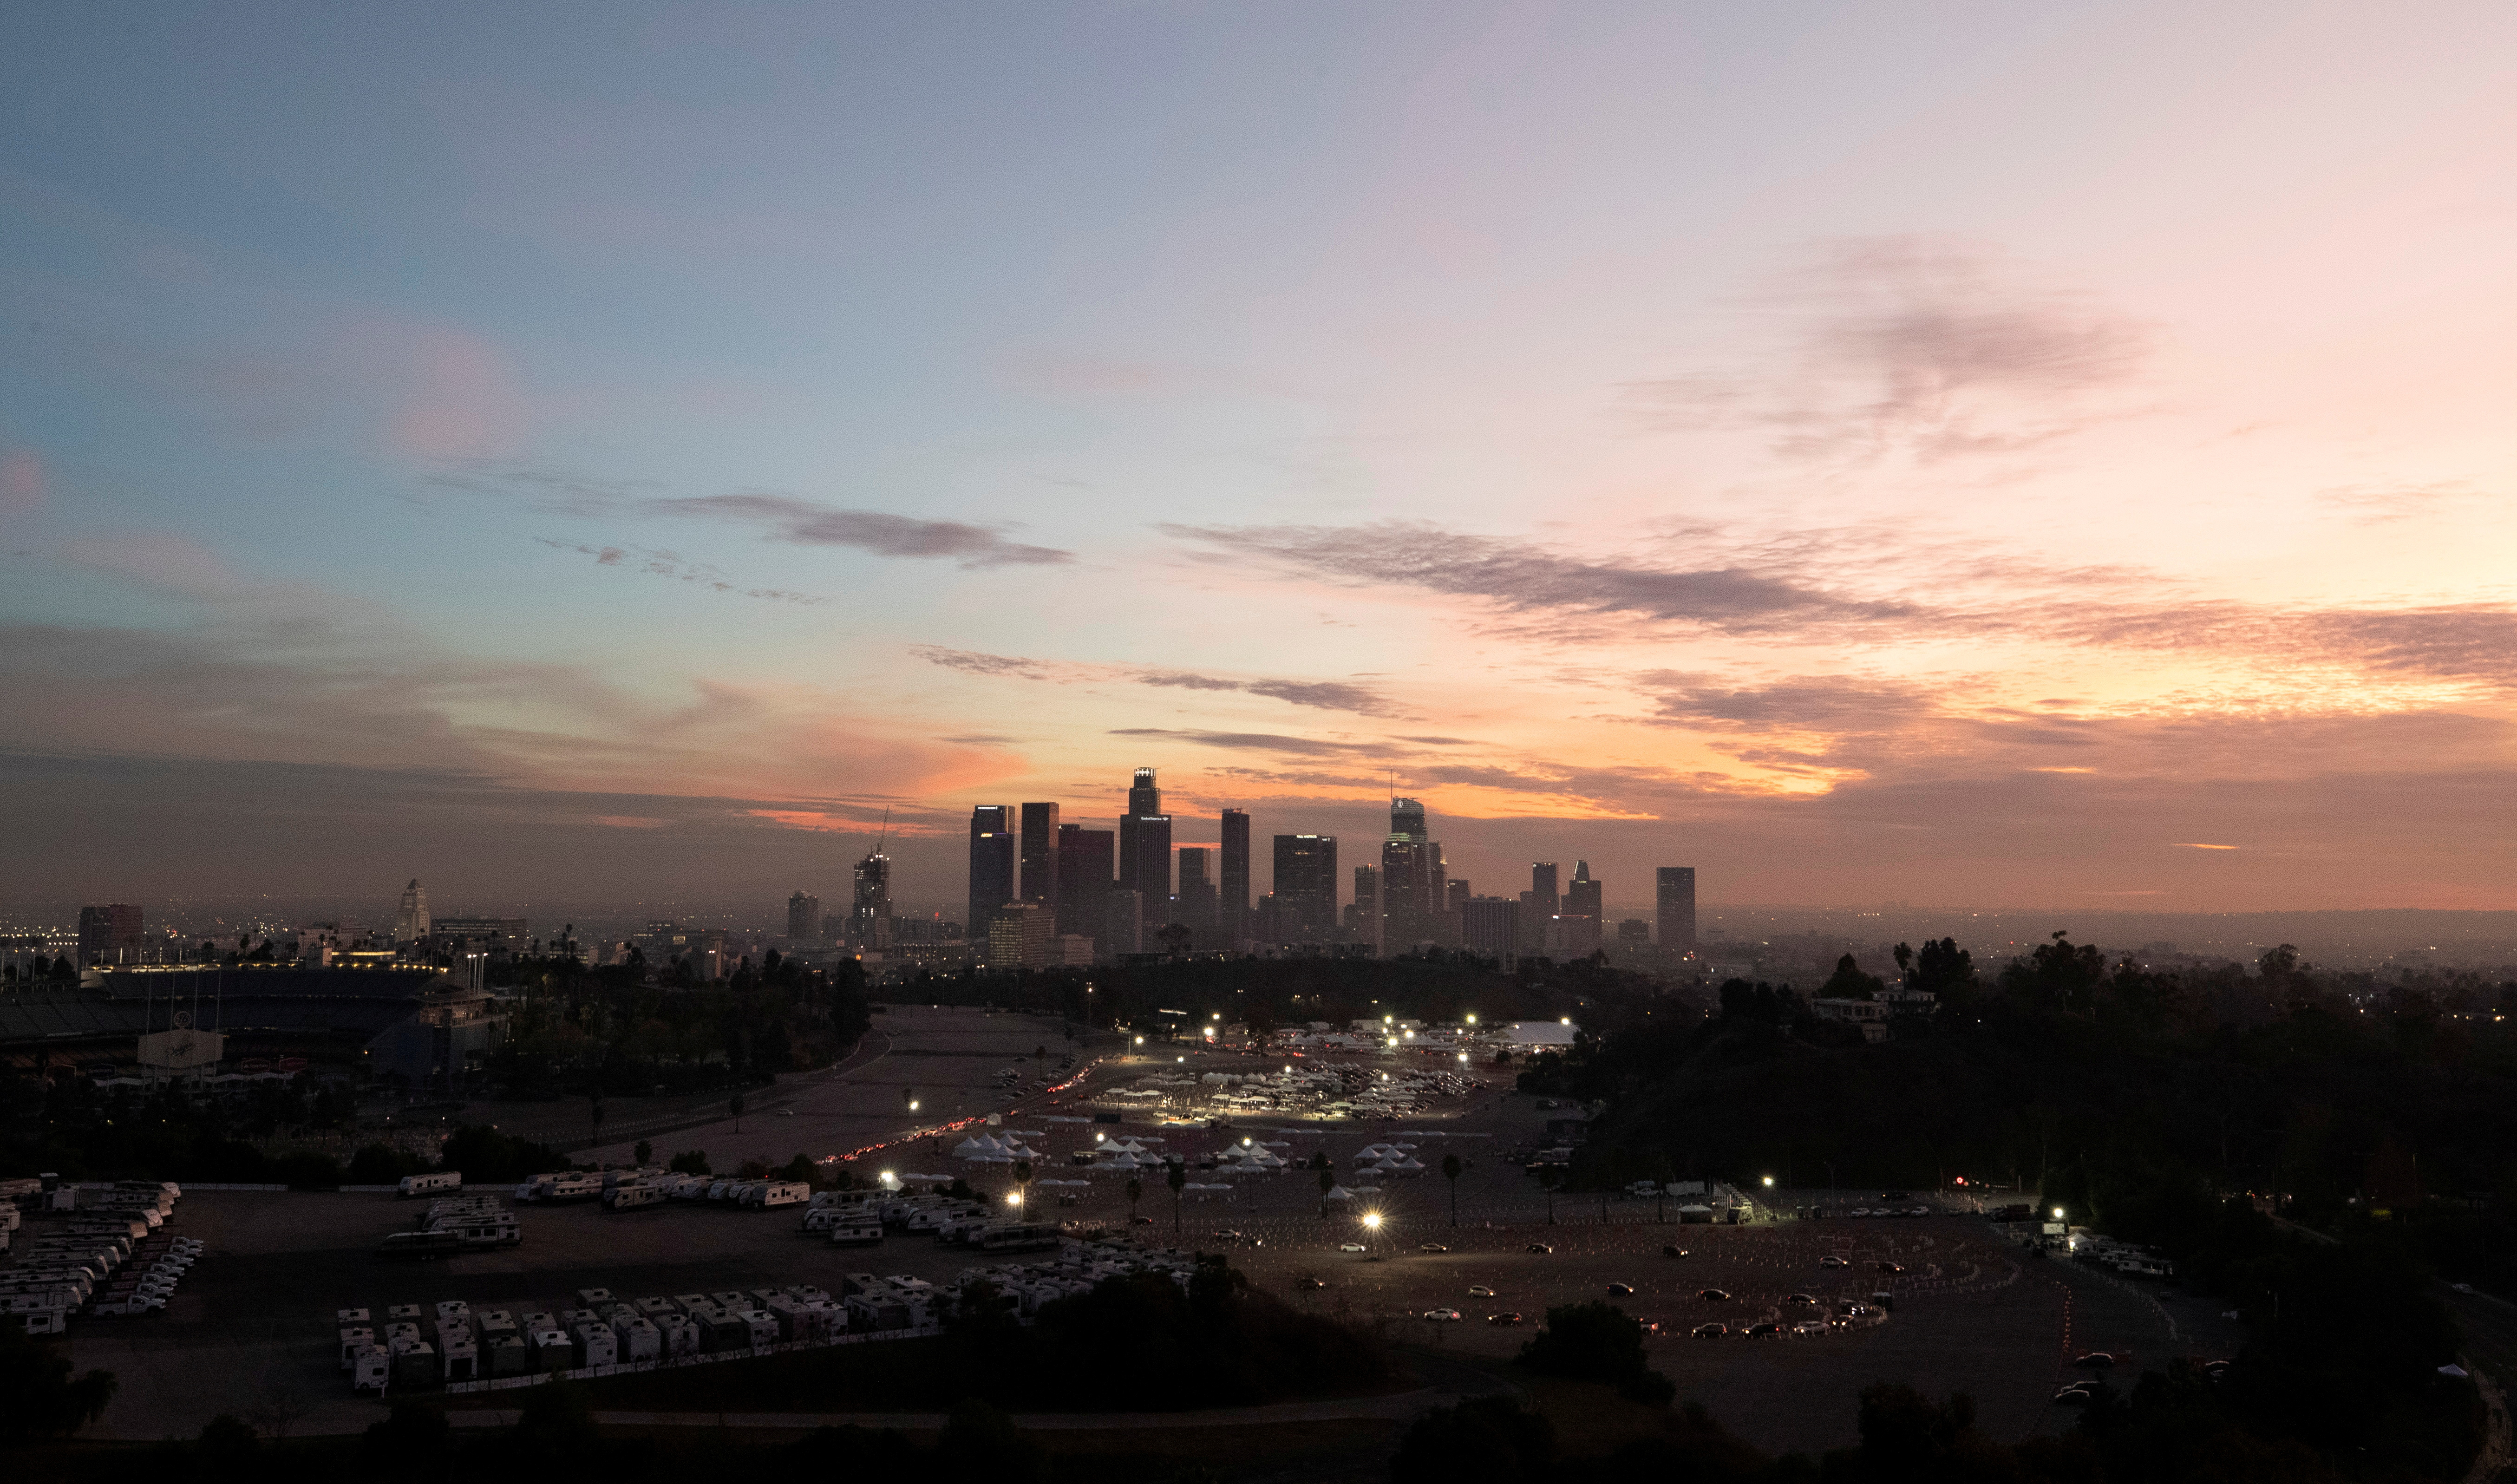 Vehicles line up at at Dodger Stadium COVID-19 vaccination site at sunset during the outbreak of the coronavirus disease (COVID-19), in Los Angeles, California, U.S., February 1, 2021. REUTERS/Mario Anzuoni/File Photo